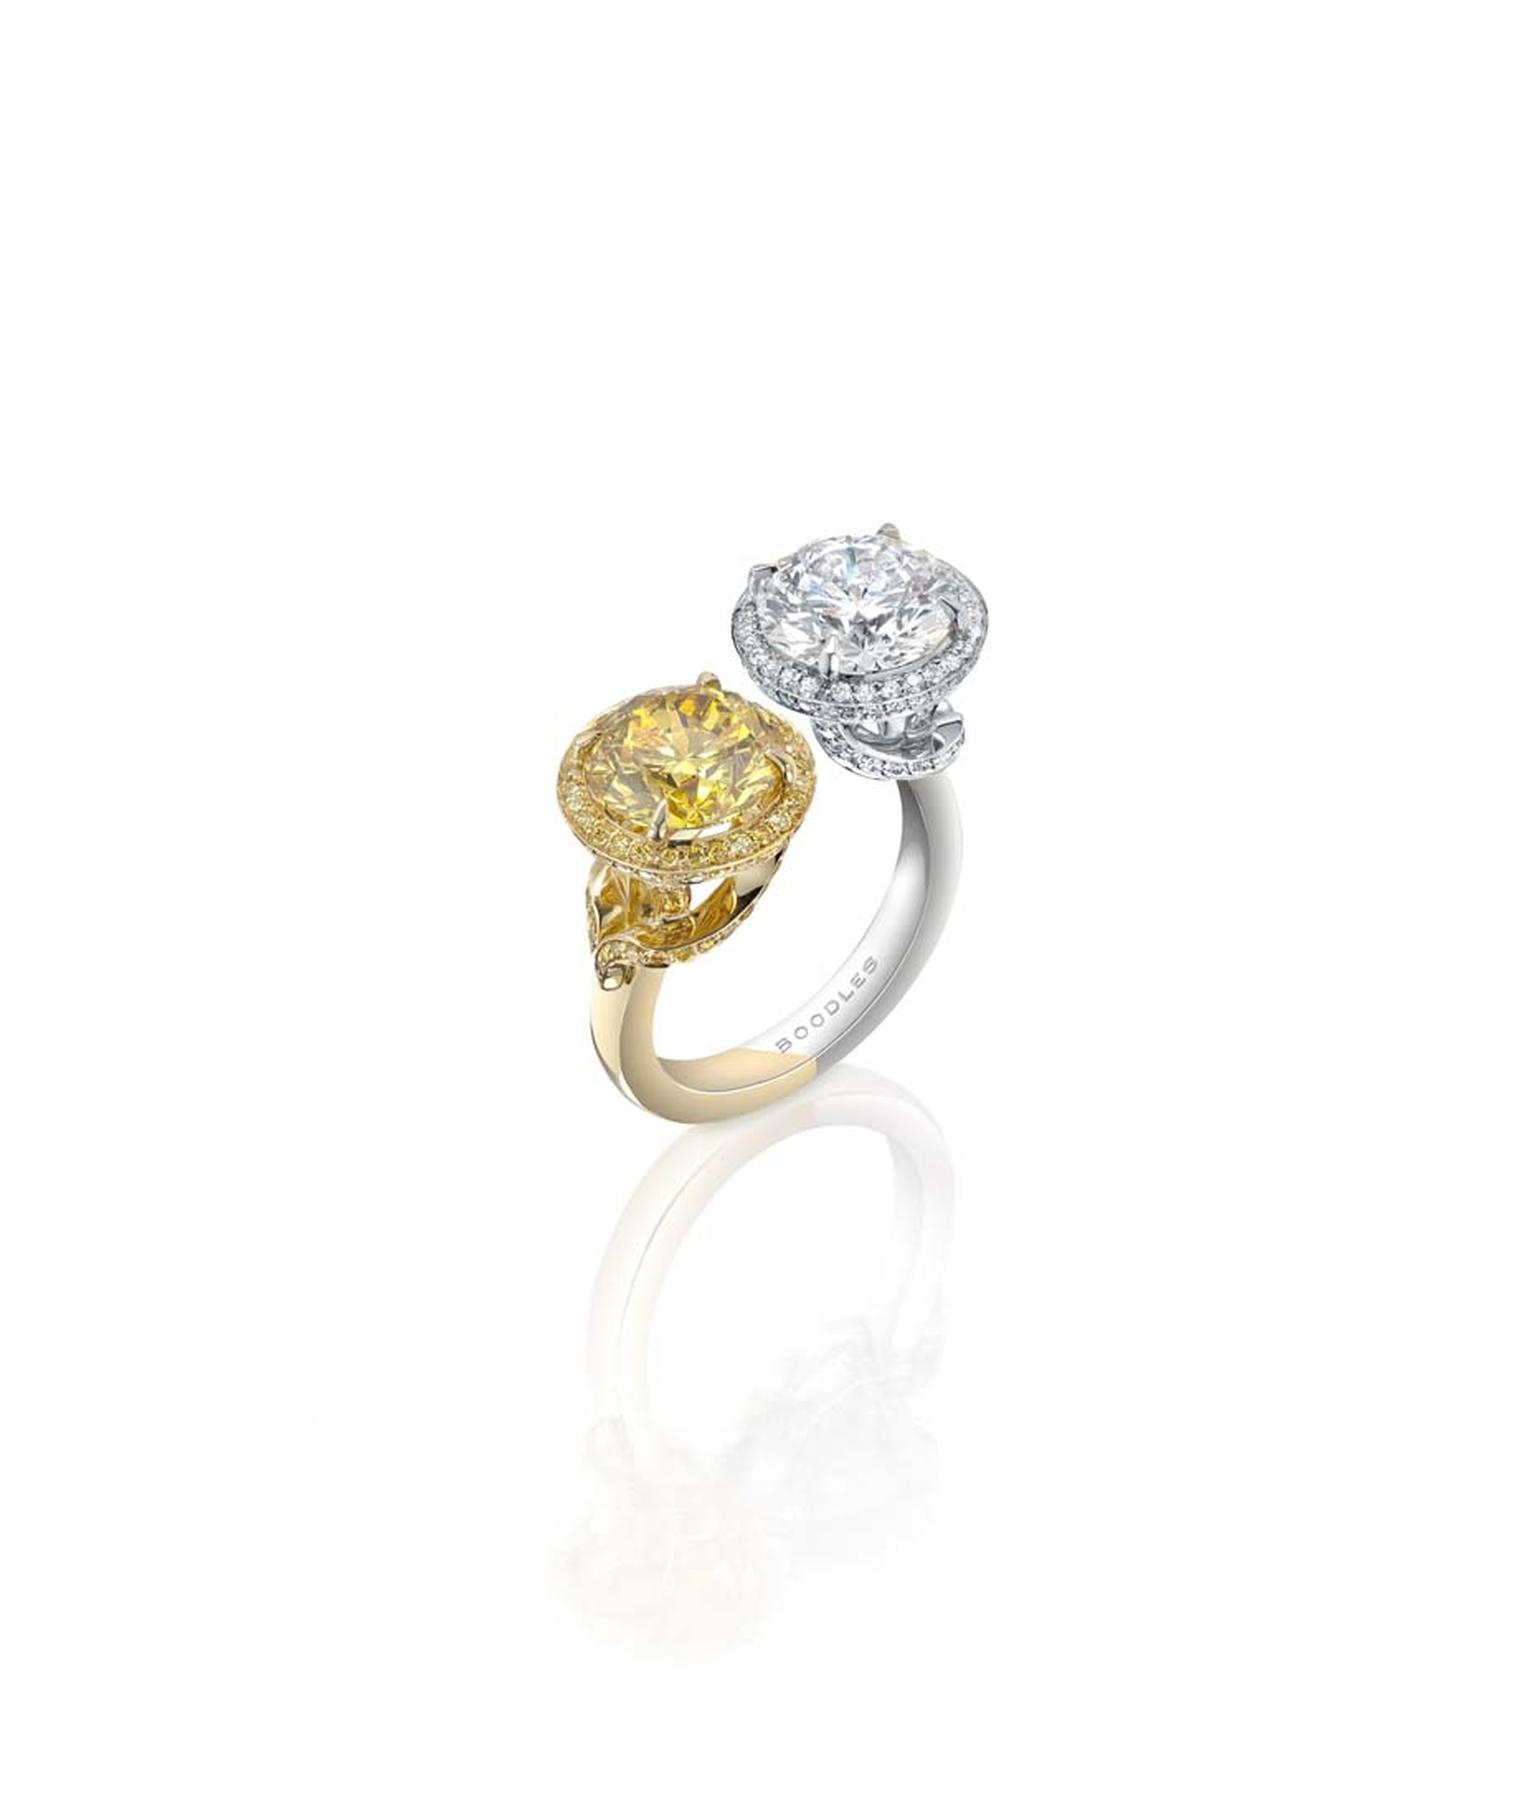 Boodles Gemini yellow and white gold ring set with a 3ct natural Fancy Vivid yellow diamond alongside a 3ct white diamond